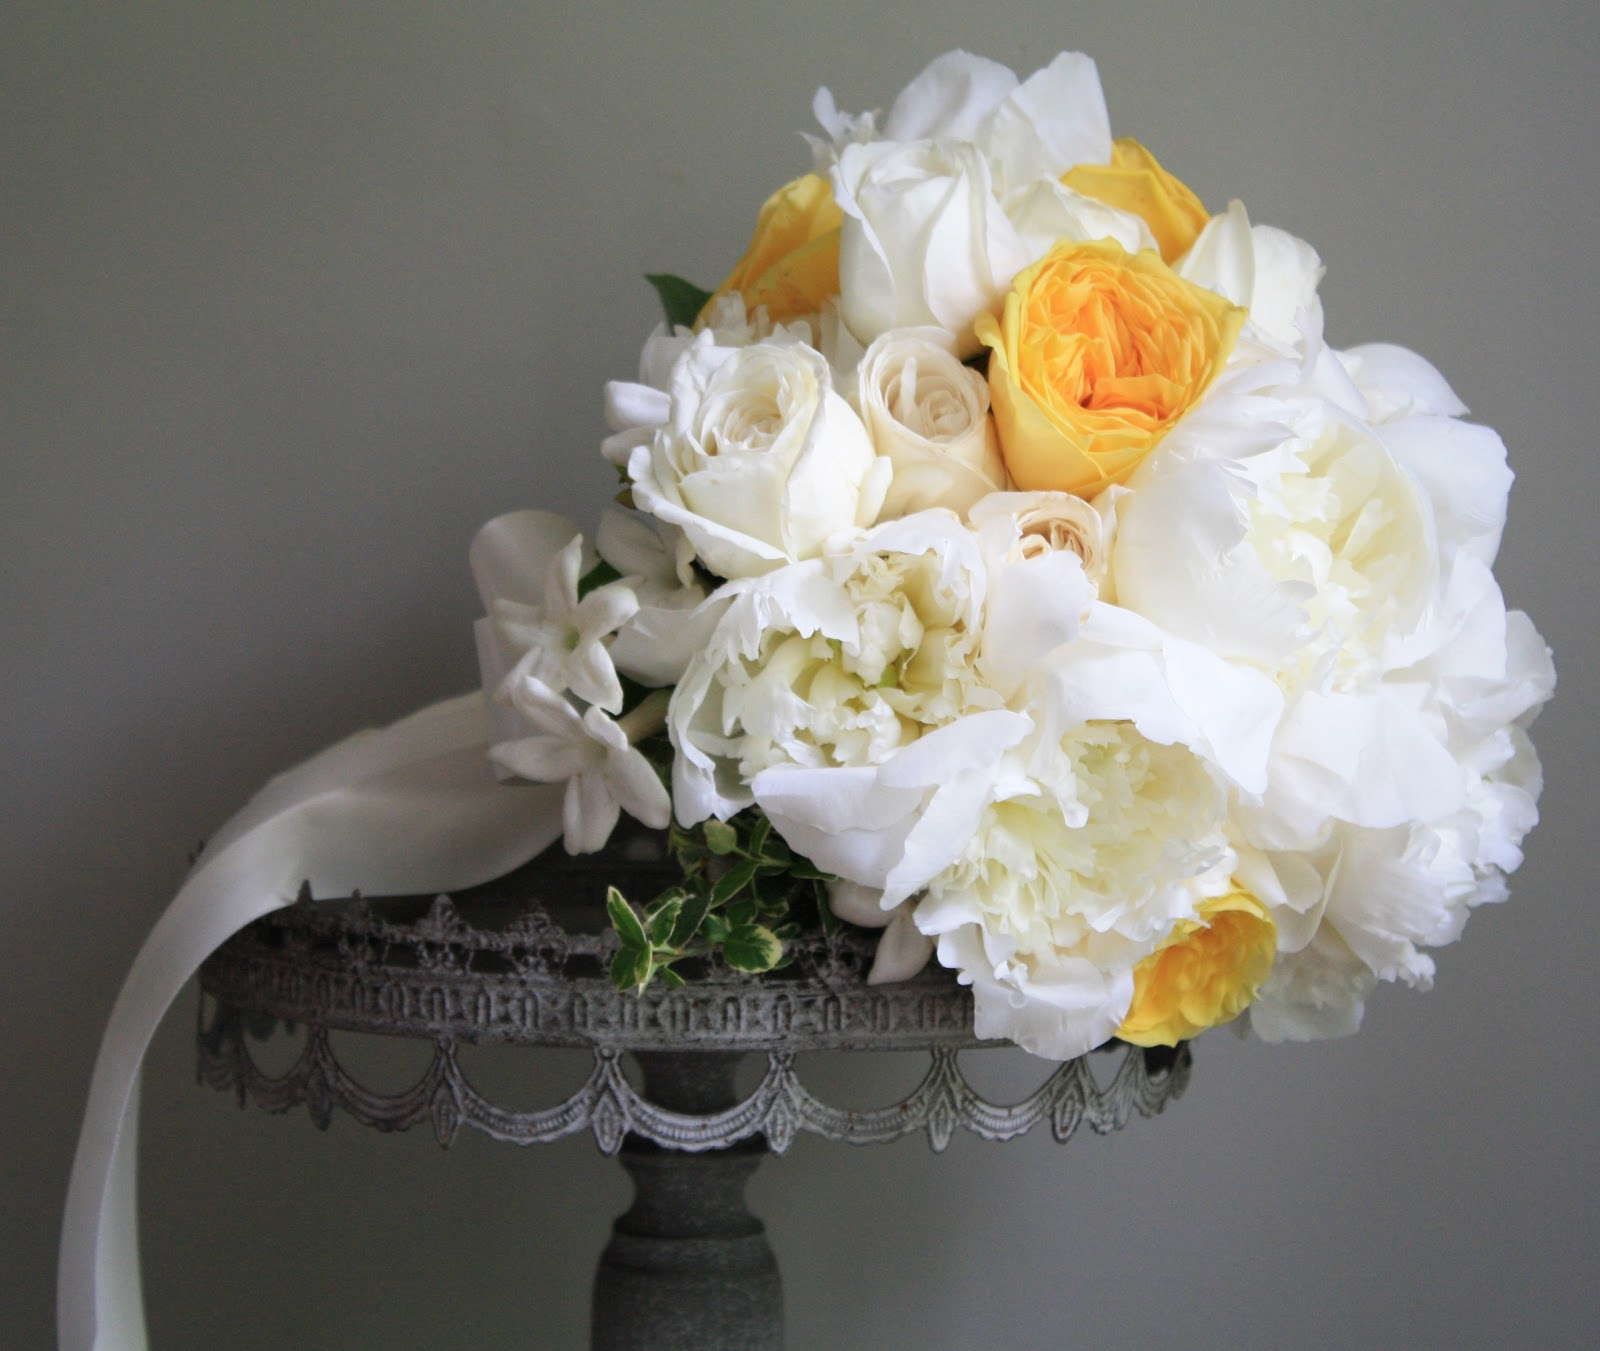 yellow garden rose and peony wedding bouquet fluffy white peonies yellow garden roses - Garden Rose And Peony